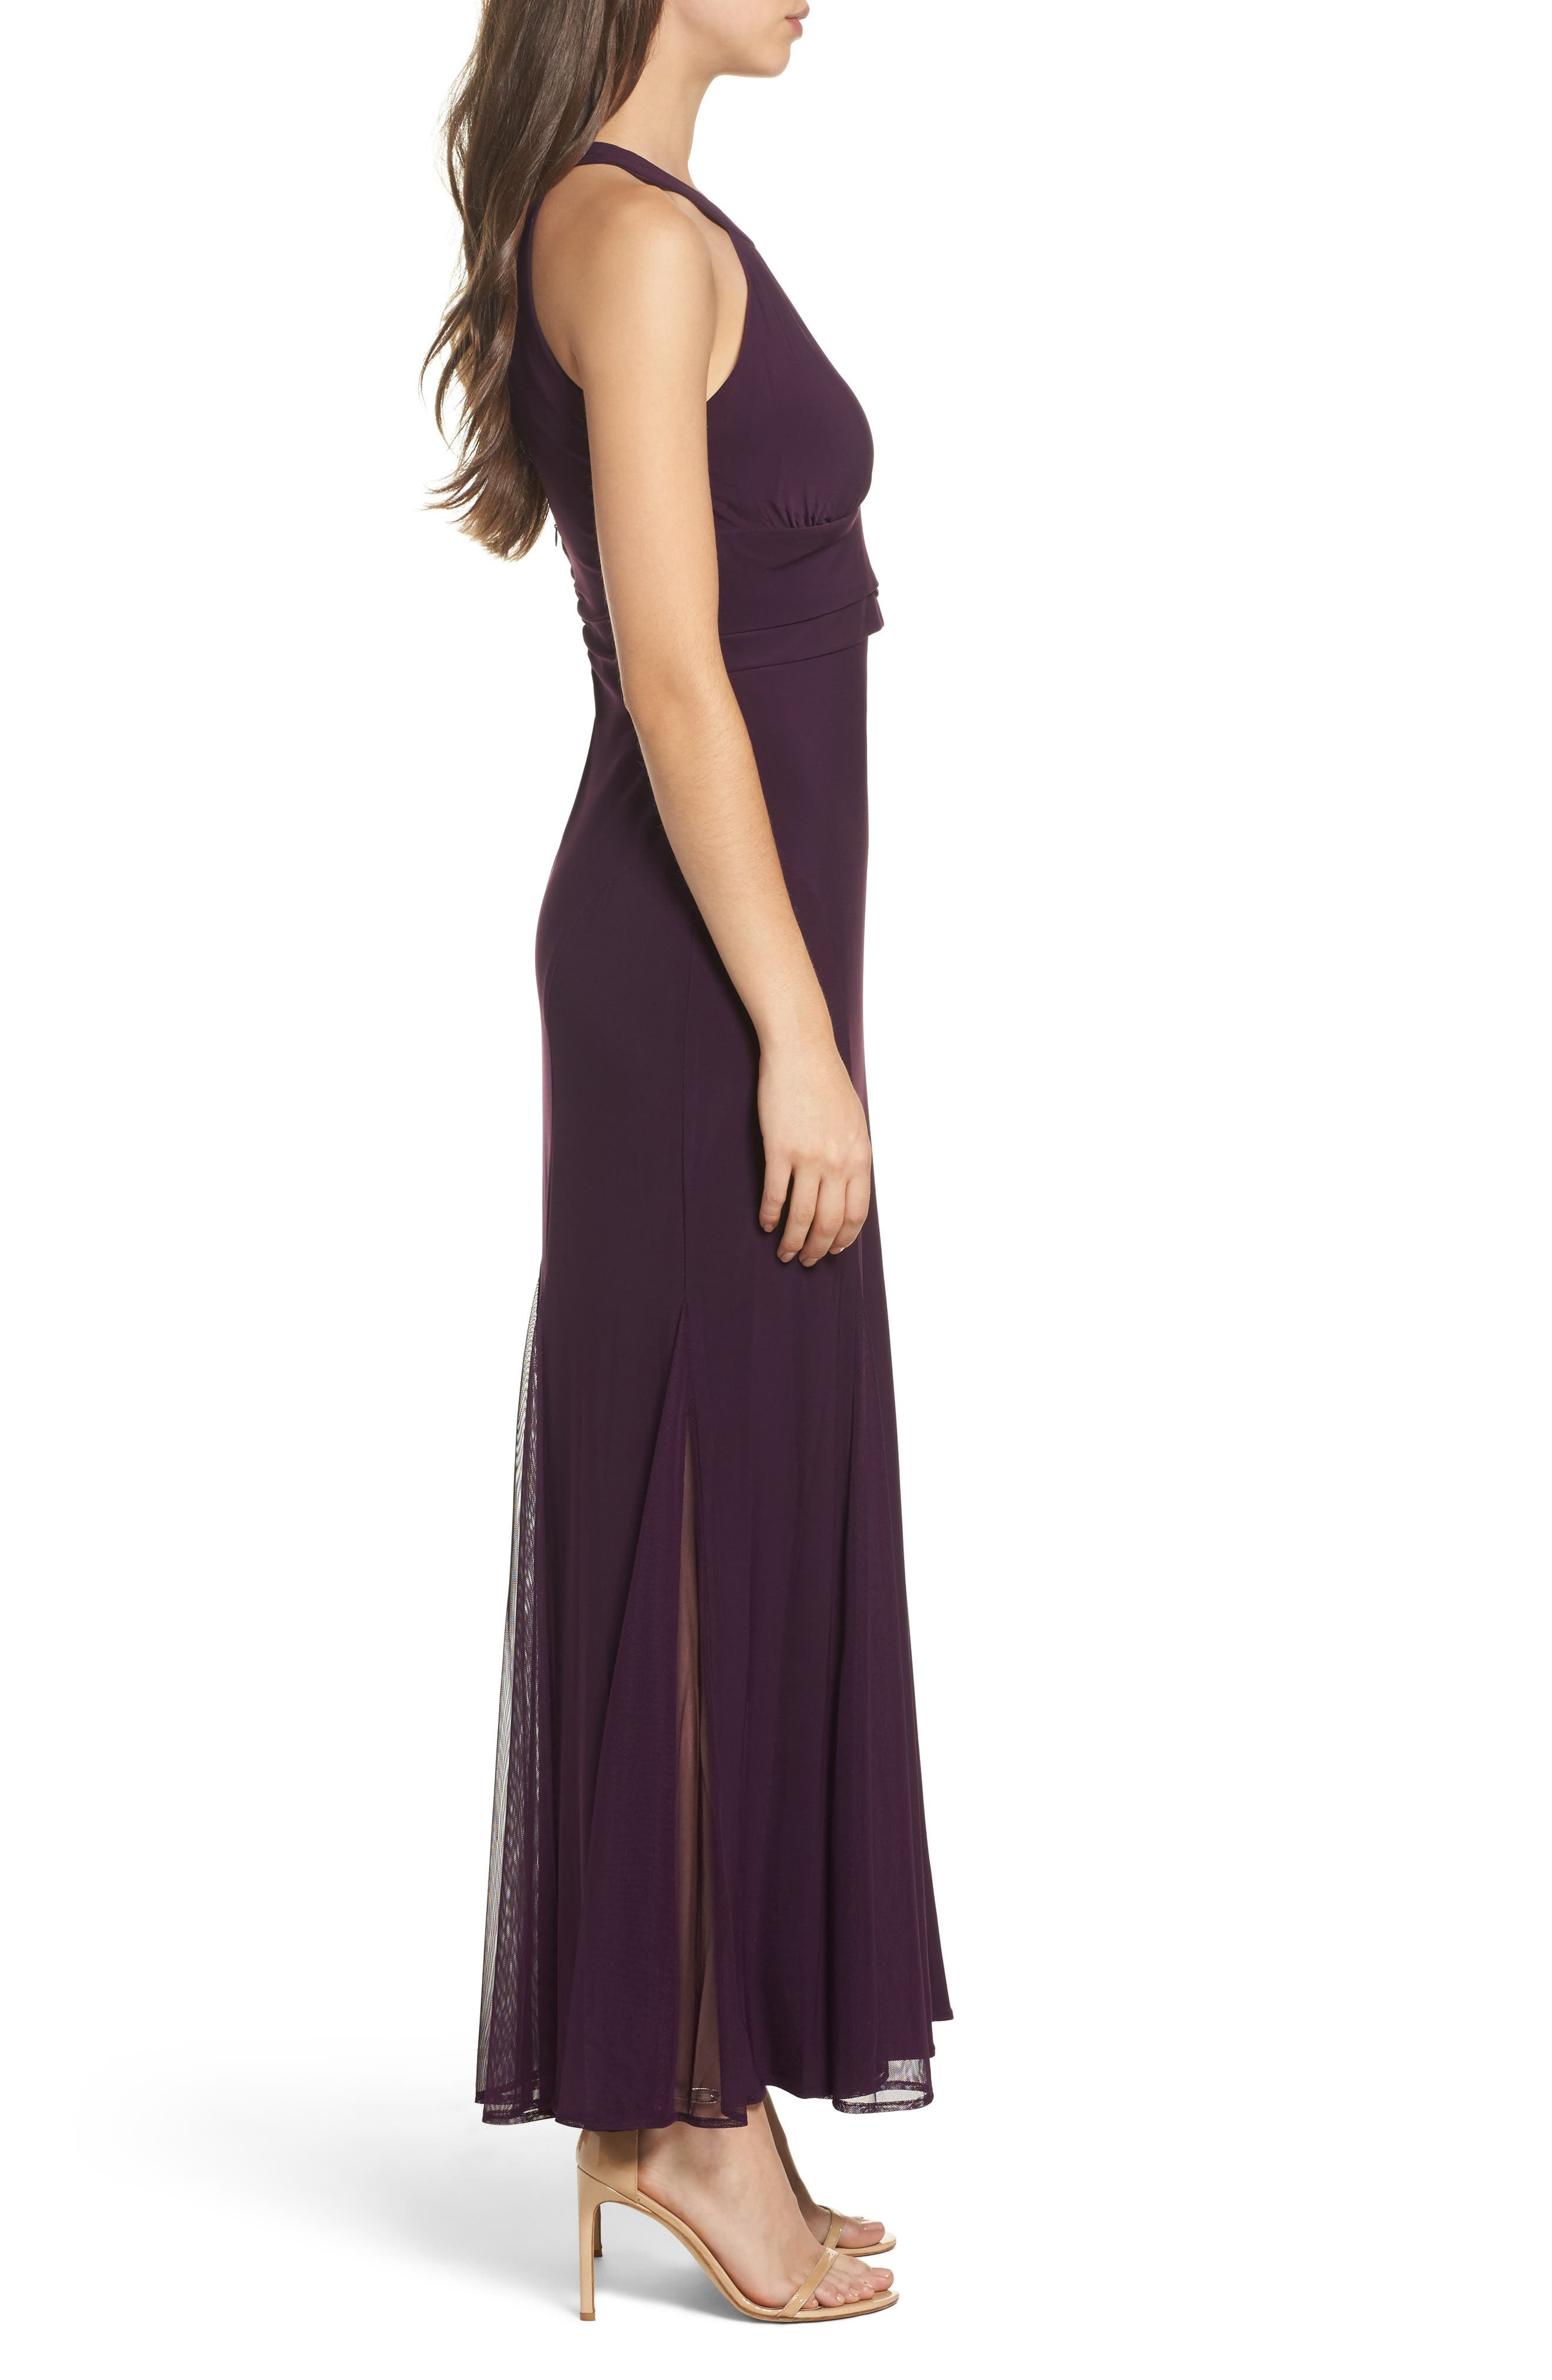 Mesh Insert Halter Neck Mermaid Dress,                             Alternate thumbnail 3, color,                             Plum